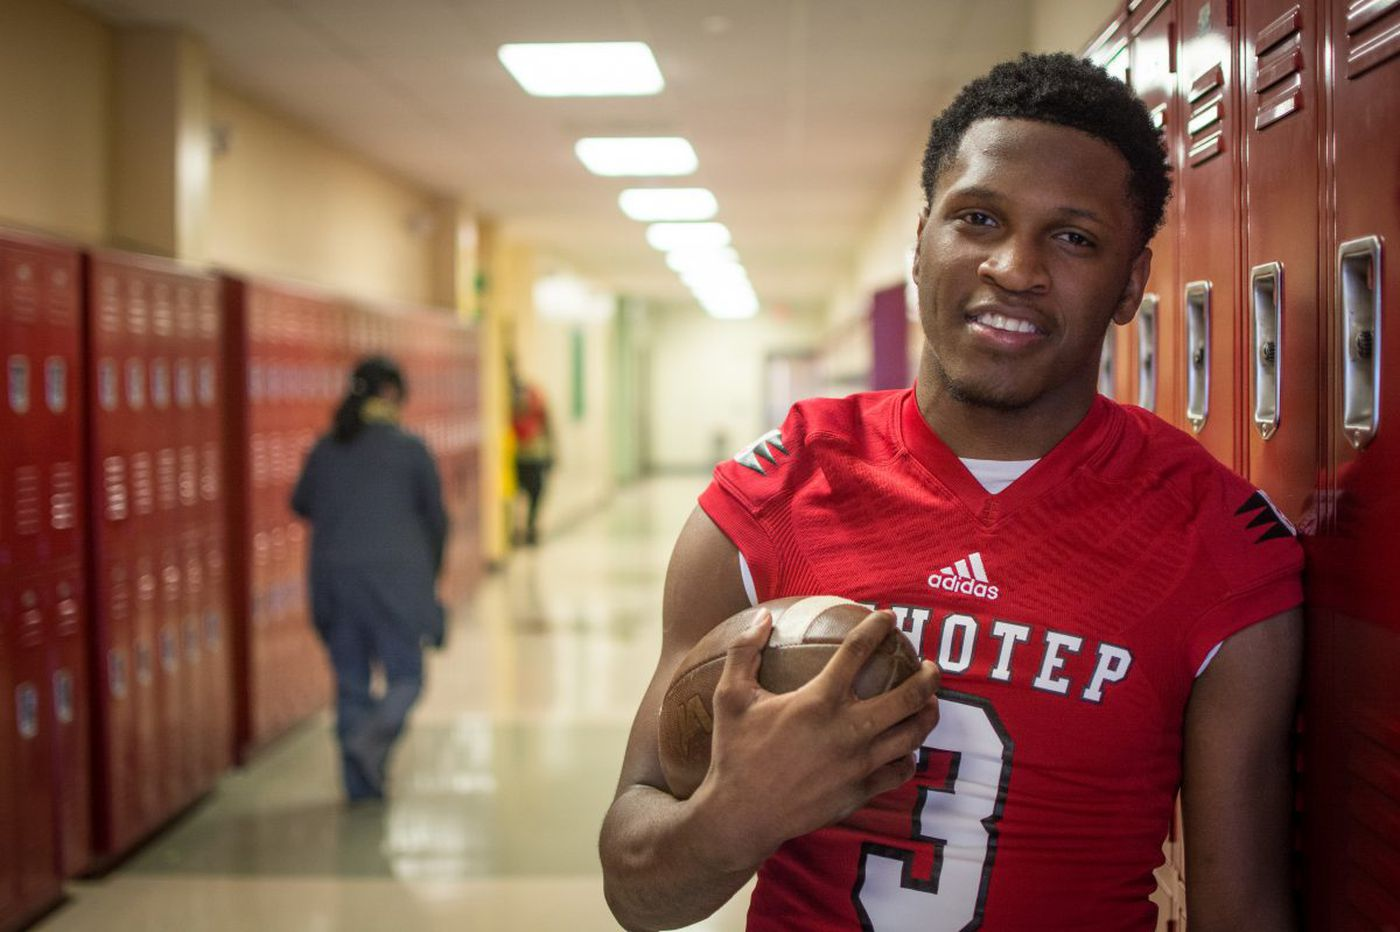 Imhotep football star Isheem Young arrested for robbing Wawa in July, missed state playoff game